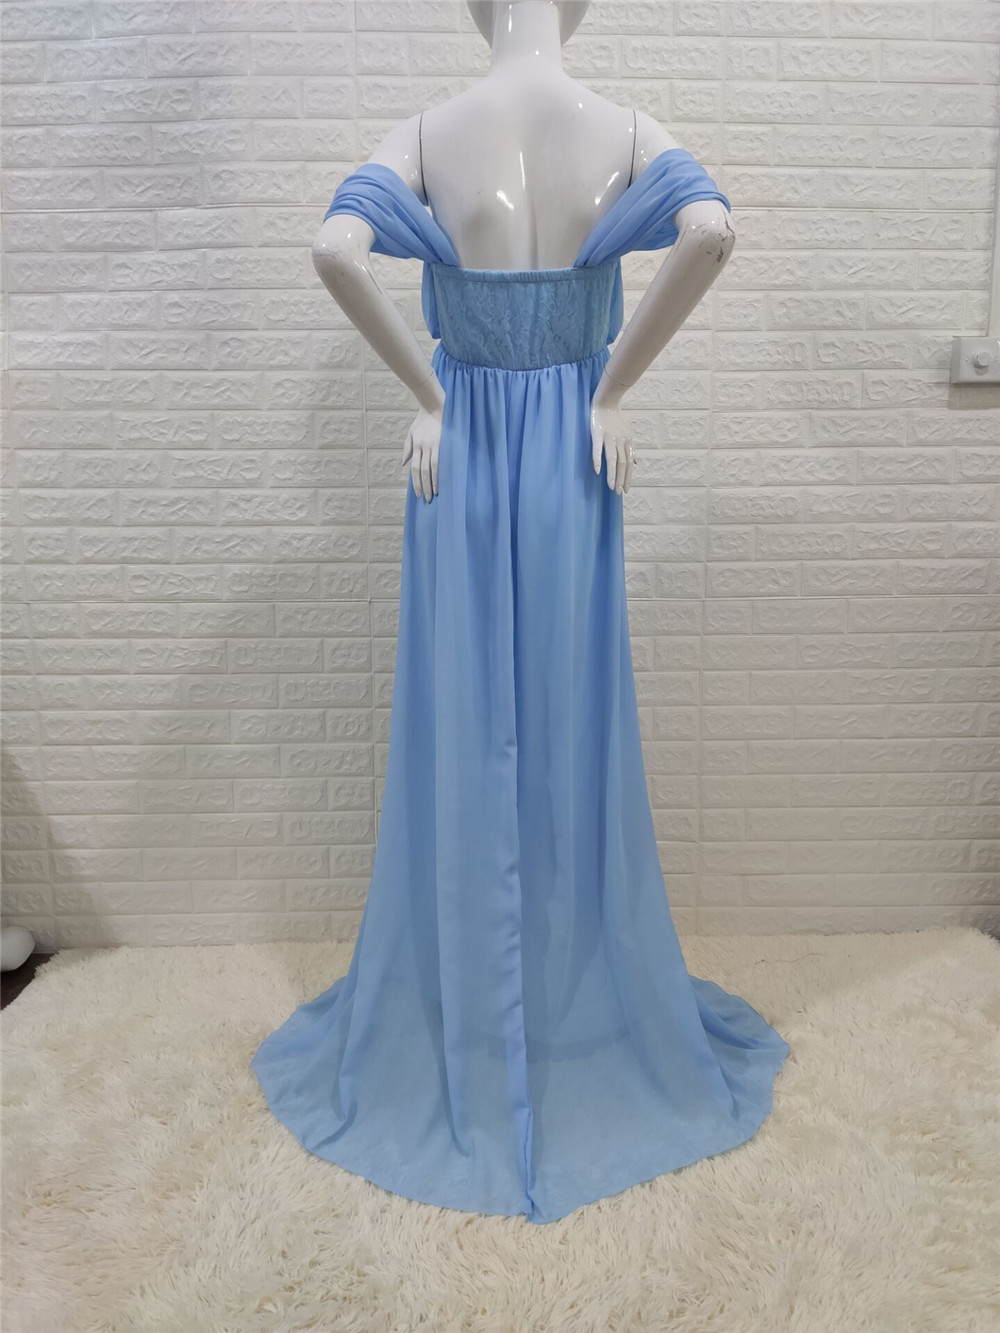 Shoulderless Sexy Maternity Dress Photo Shoot Long Pregnancy Dresses Photography Props Lace Chiffon Maxi Gown For Pregnant Women (18)